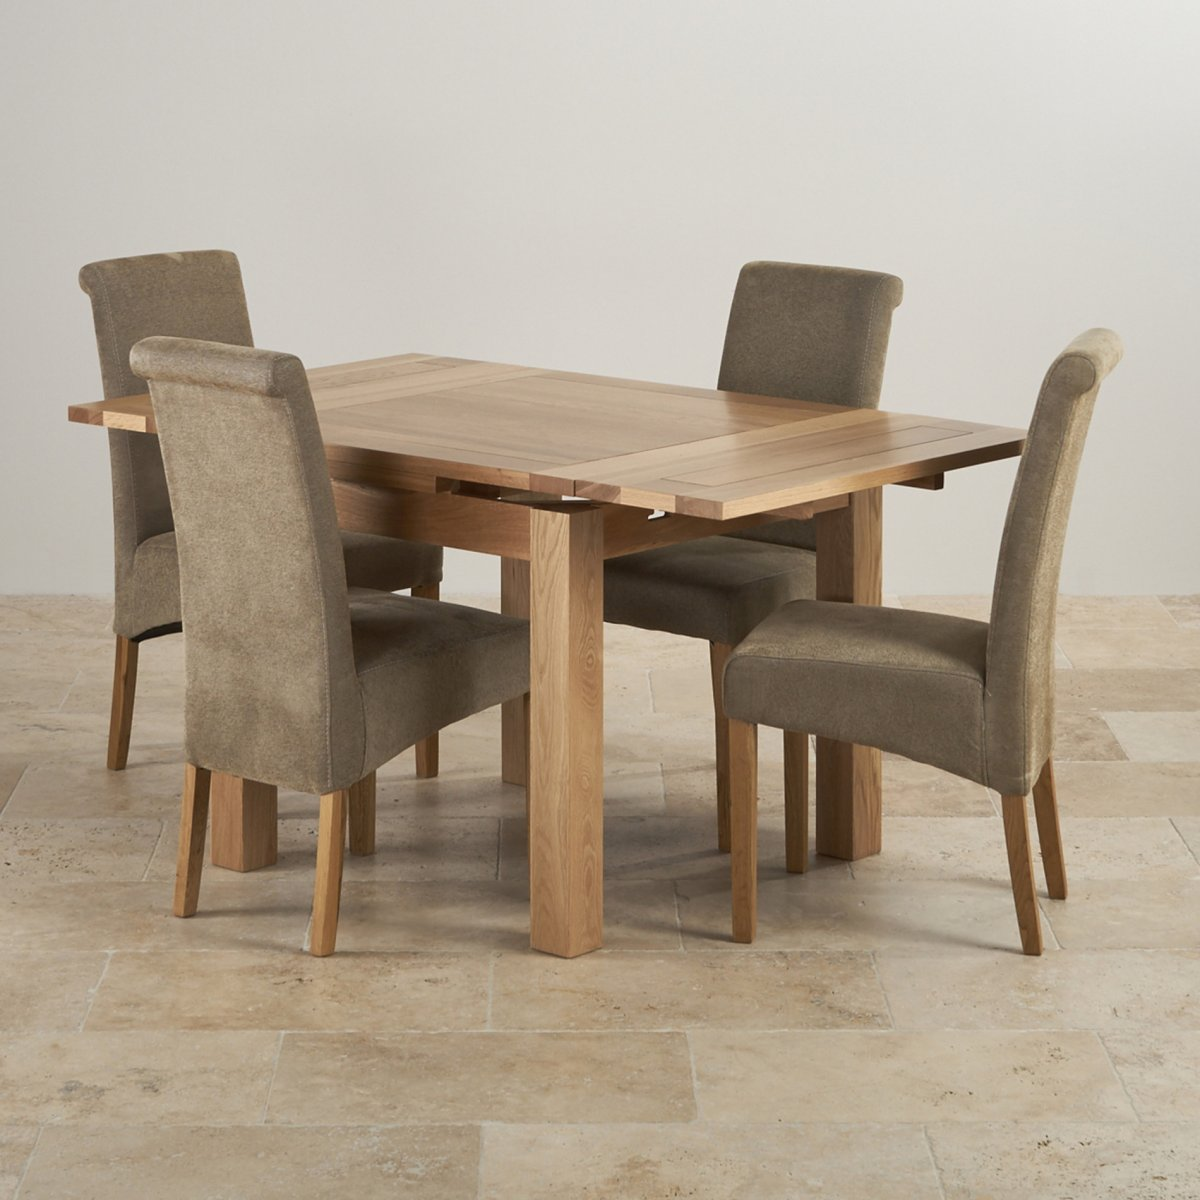 Dorset Oak 3ft Dining Table with 4 Sage Fabric Chairs : dorset natural solid oak dining set 3ft extending table with 4 scroll back plain sage fabric chairs 56f3fe393a06d99517e717d3145349153f212bc5646e2 from www.oakfurnitureland.co.uk size 1200 x 1200 jpeg 146kB